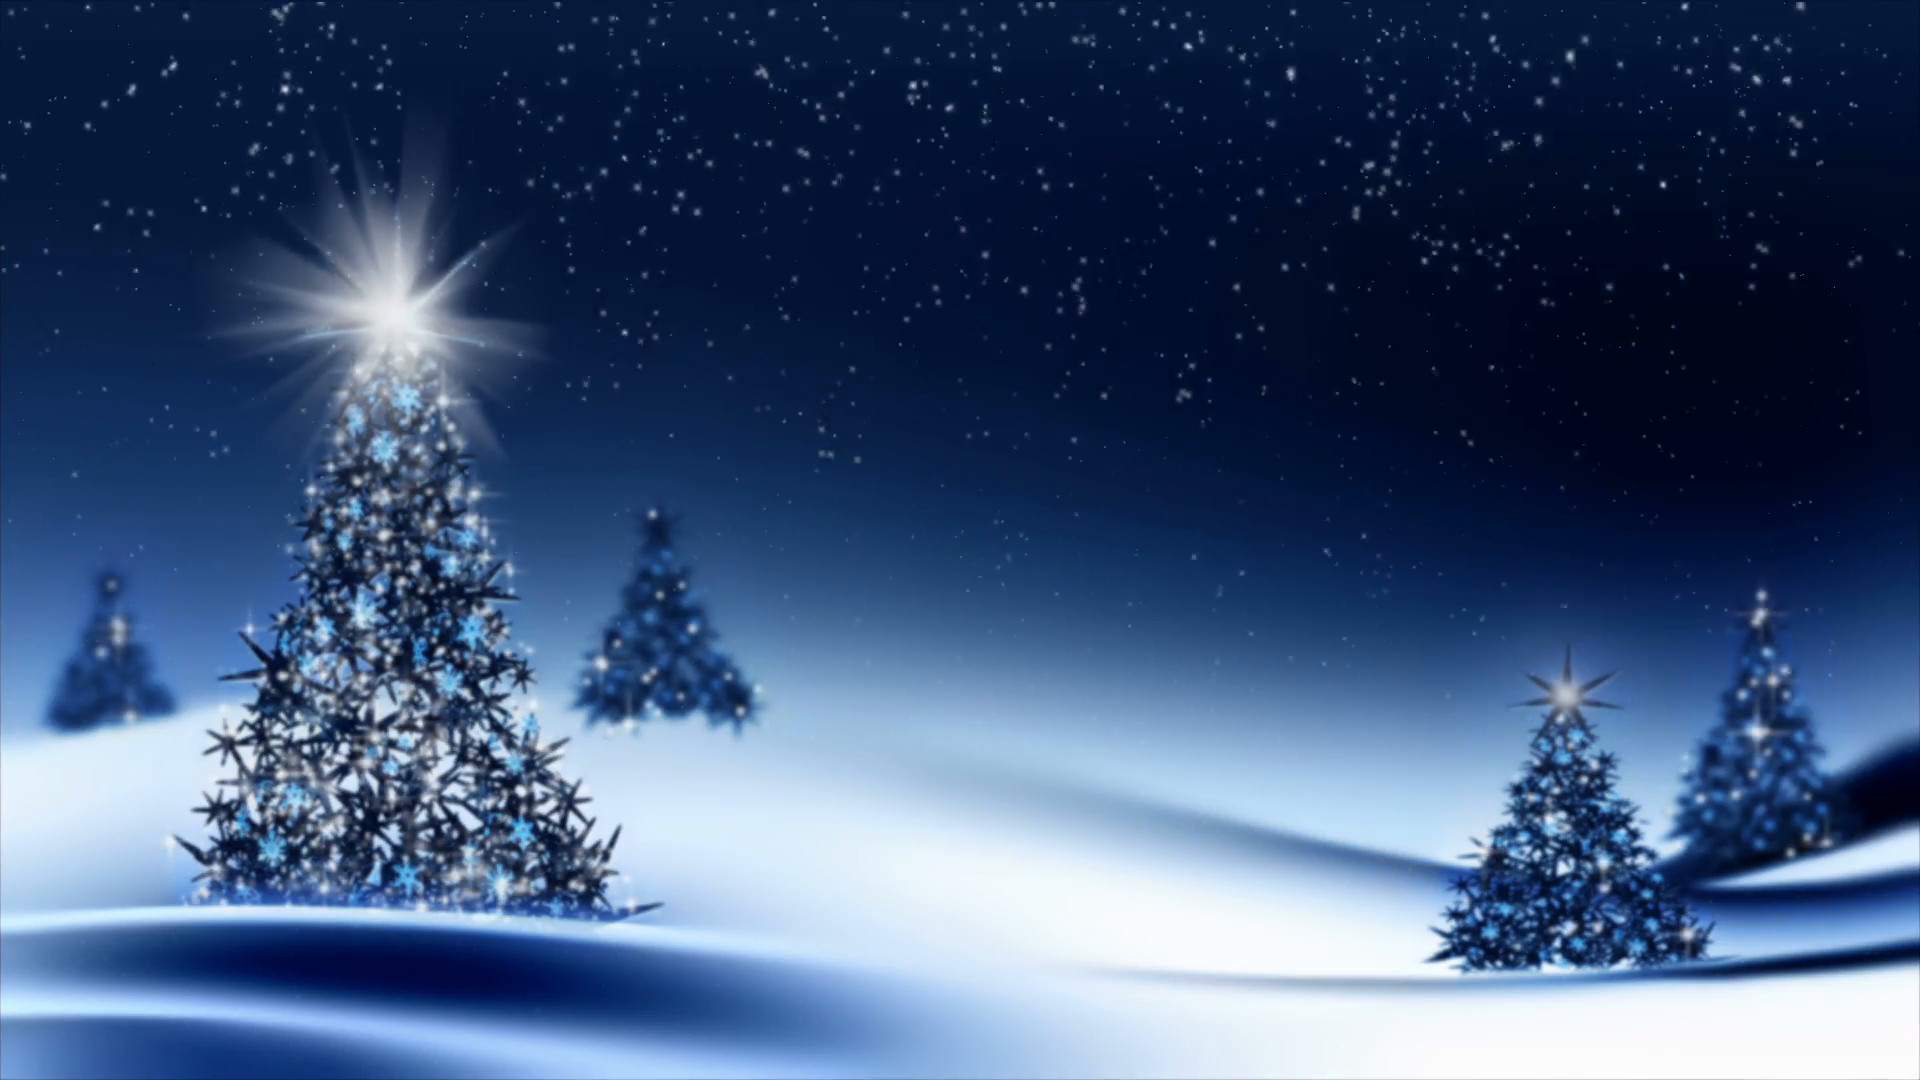 Winter Christmas Backgrounds: Christmas Scenery Backgrounds ·① WallpaperTag